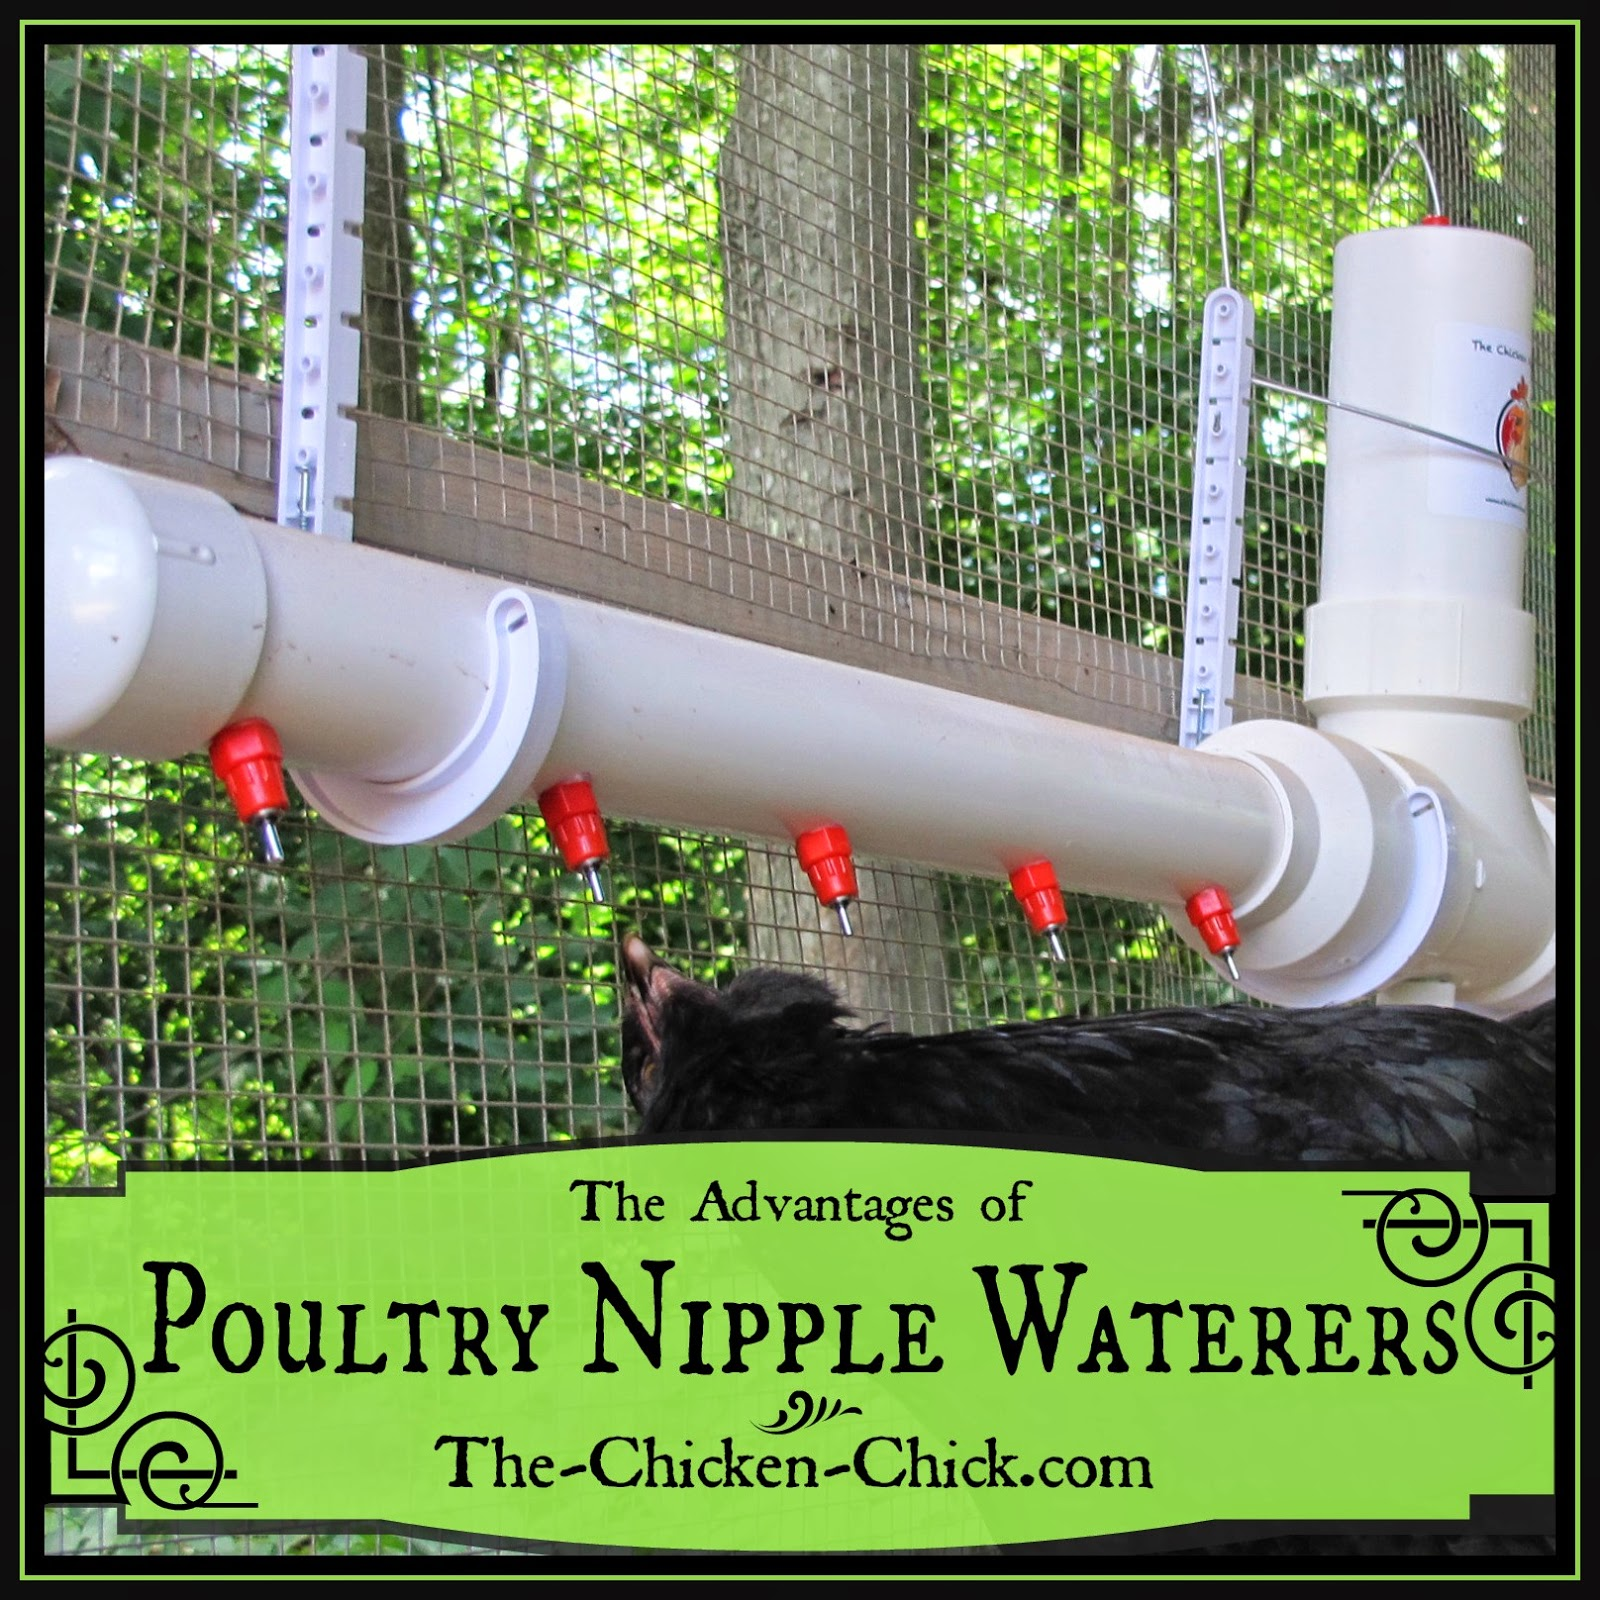 "I had been making my own poultry nipple waterers (PNW) for my quail recently when a new product came to my attention, The Chicken Fountain™. I read about The Chicken Fountain, but still could not understand what was better about it than the PNWs I had been making. That is, until the inventor, North Carolina resident Frank Cardaropoli, personally delivered and installed one for my chickens. I'm a ""gotta see it to believe it"" kind of consumer and now that I've seen it and watched my chickens using it, I am a firm believer that The Chicken Fountain is better for my chickens than any other water delivery system available."